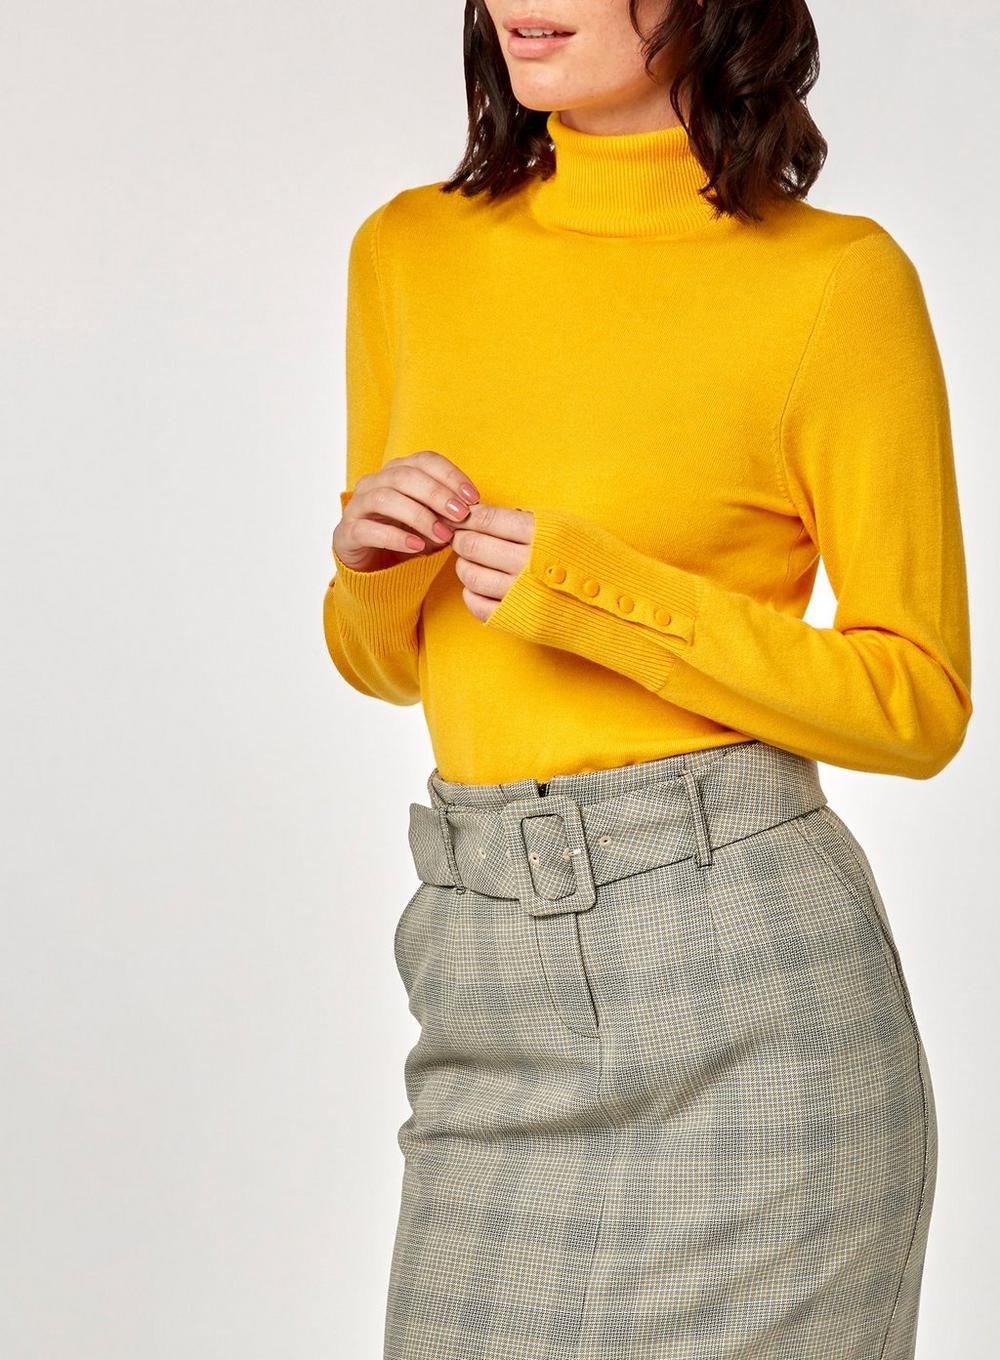 e41d6428d1 Lyst - Dorothy Perkins Bright Yellow Roll Neck Jumper in Yellow